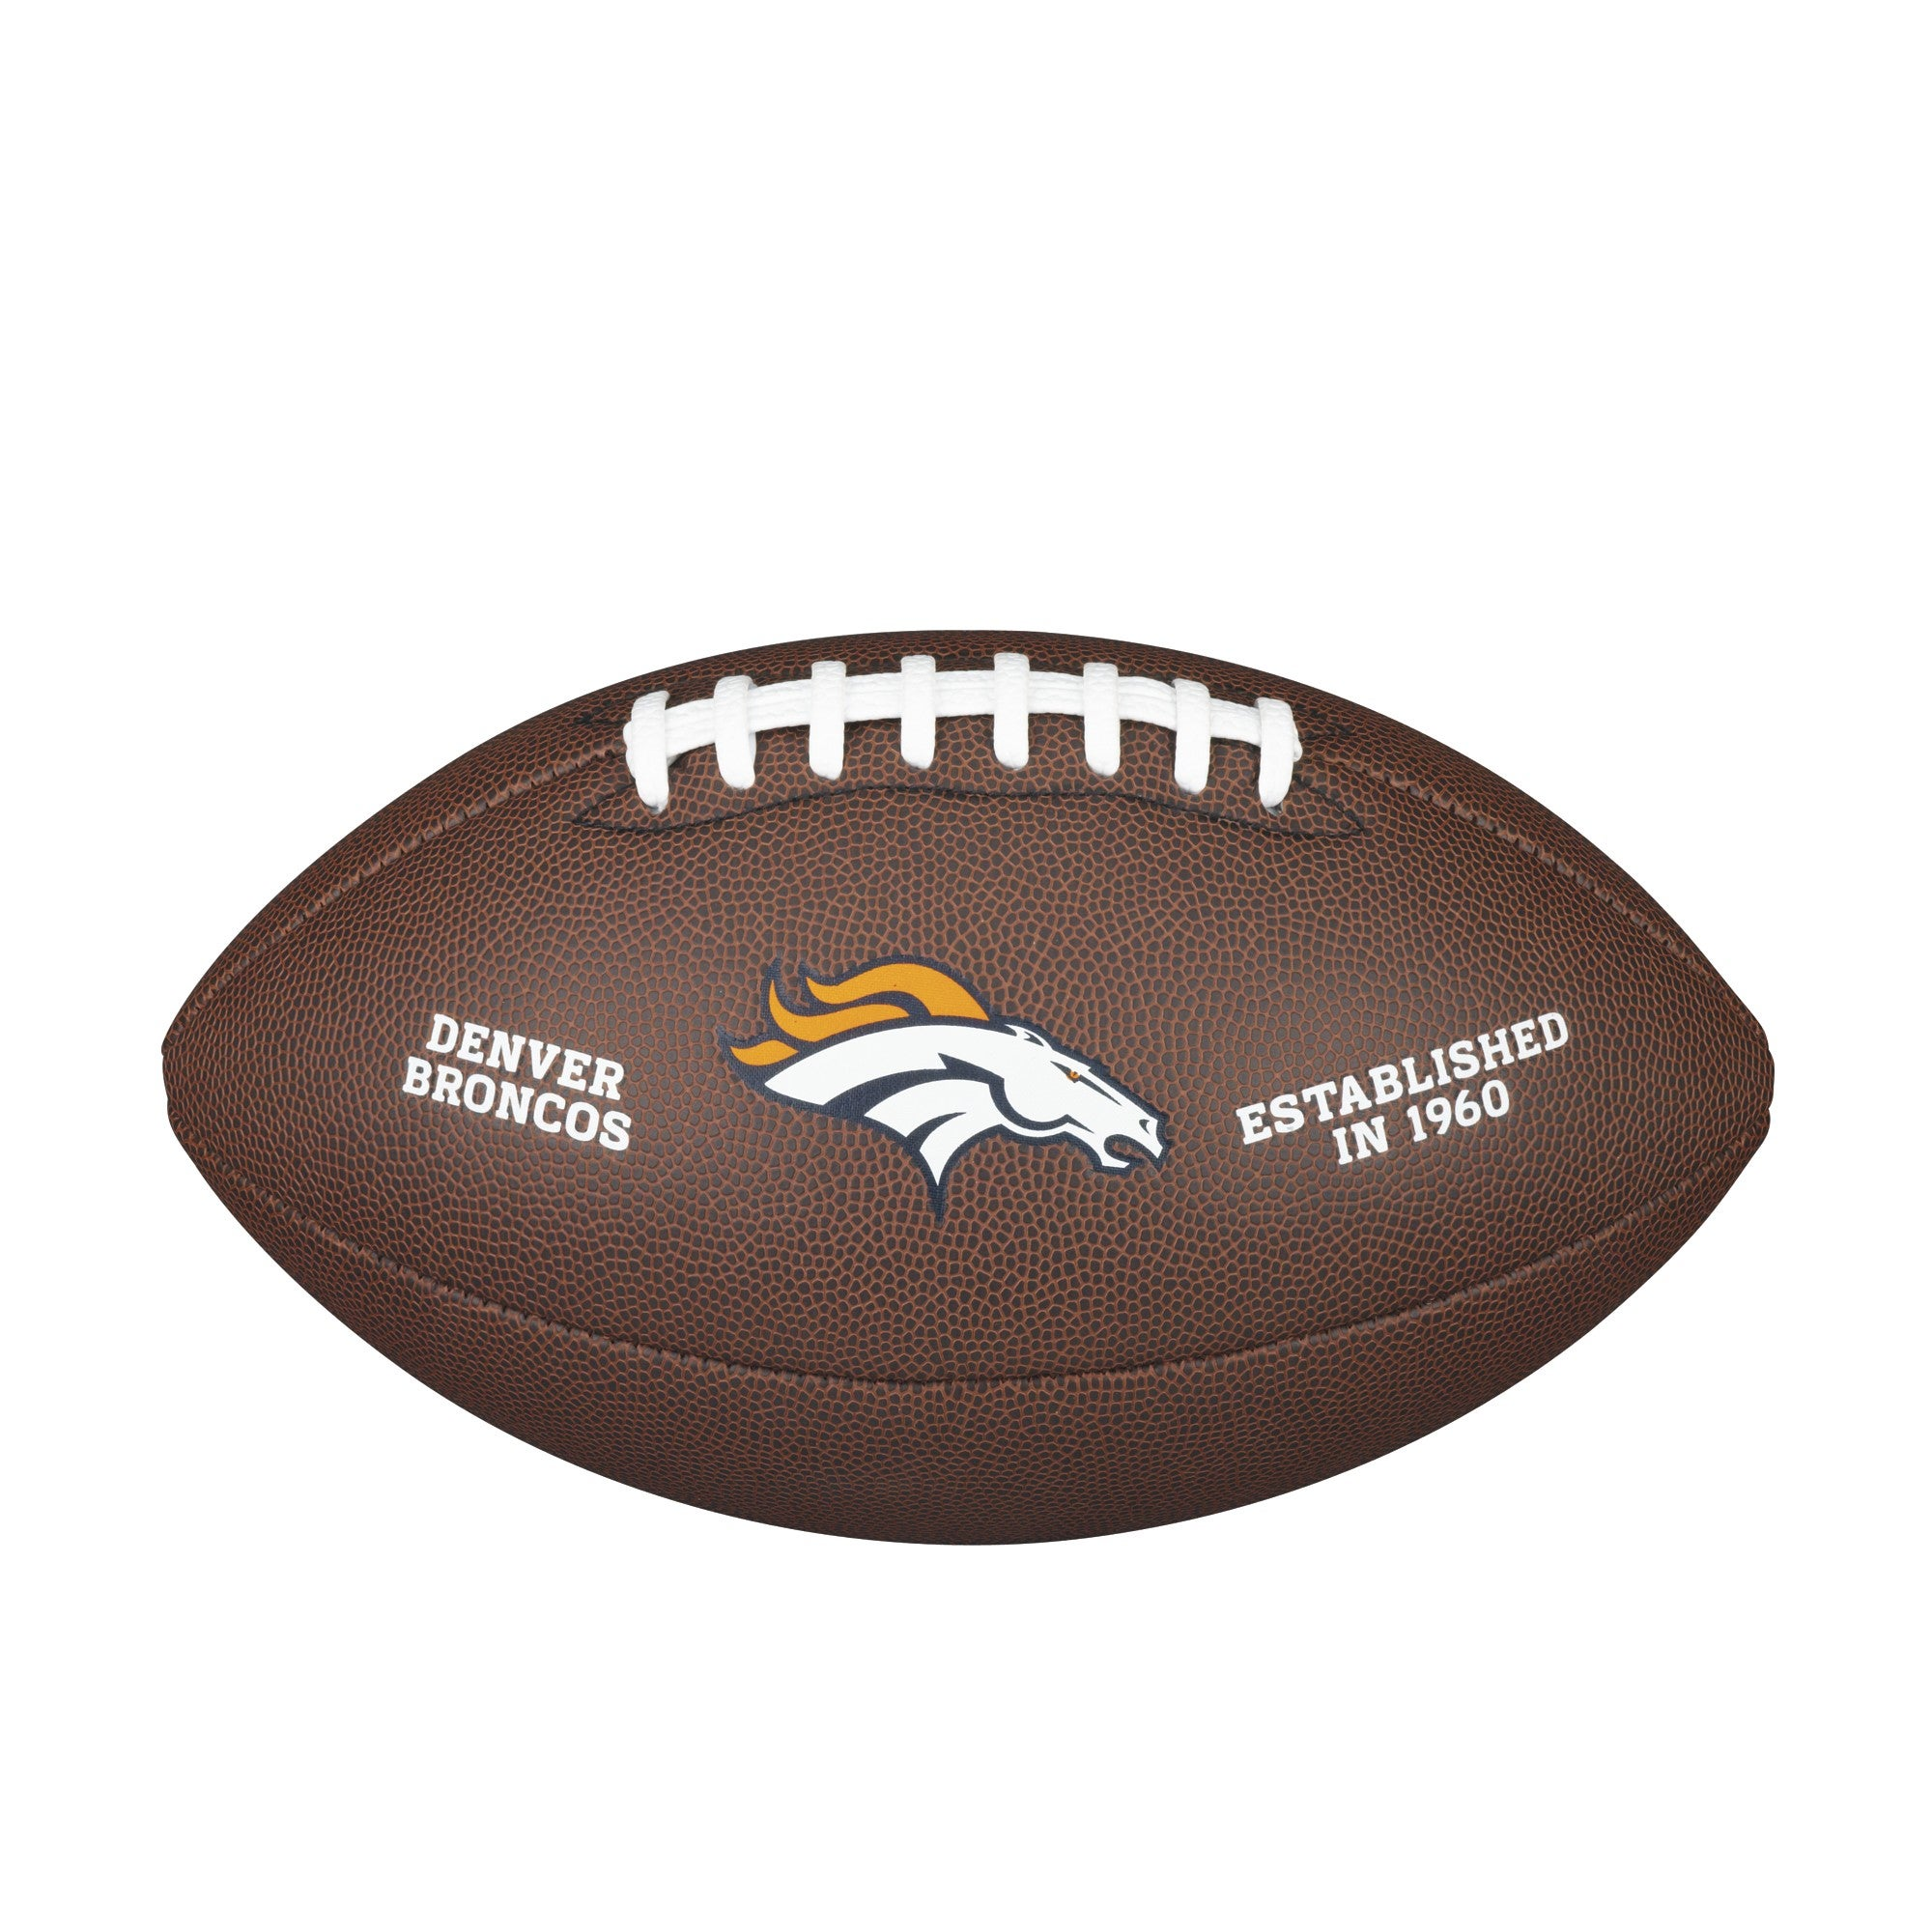 NFL TEAM LOGO COMPOSITE FOOTBALL - OFFICIAL, DENVER BRONCOS